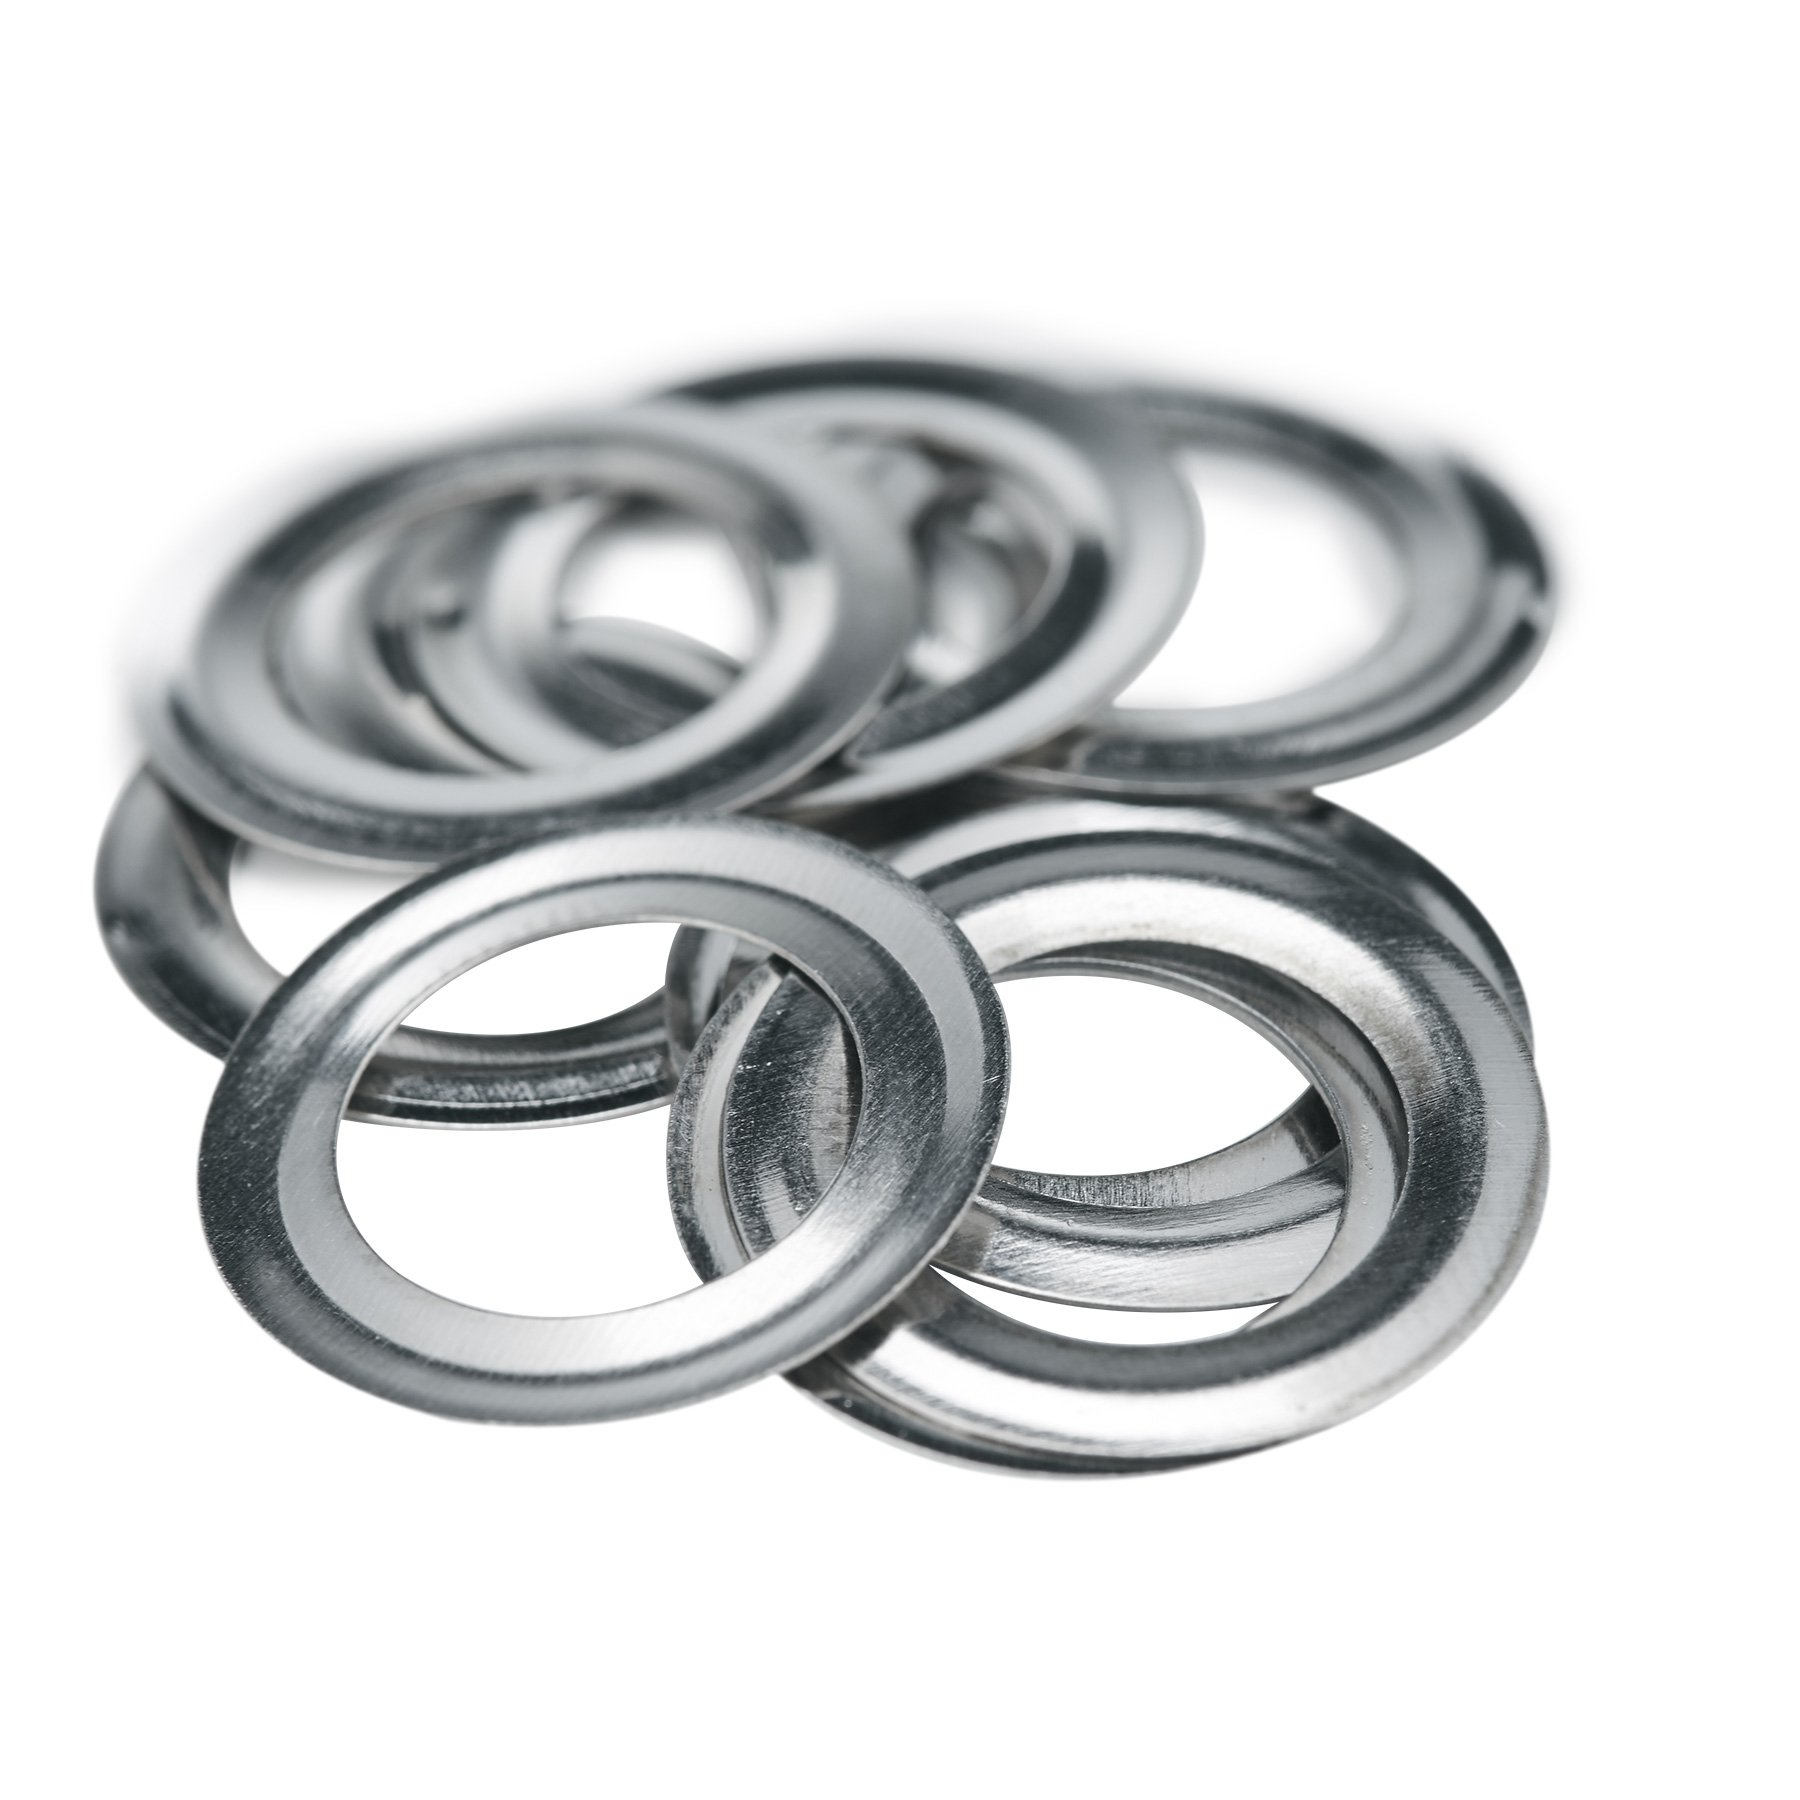 Pinty 1000 Grommets + 1000 Washers - Nickel Finish - #2 Size, 3/8'' Eyelets by Pinty (Image #6)